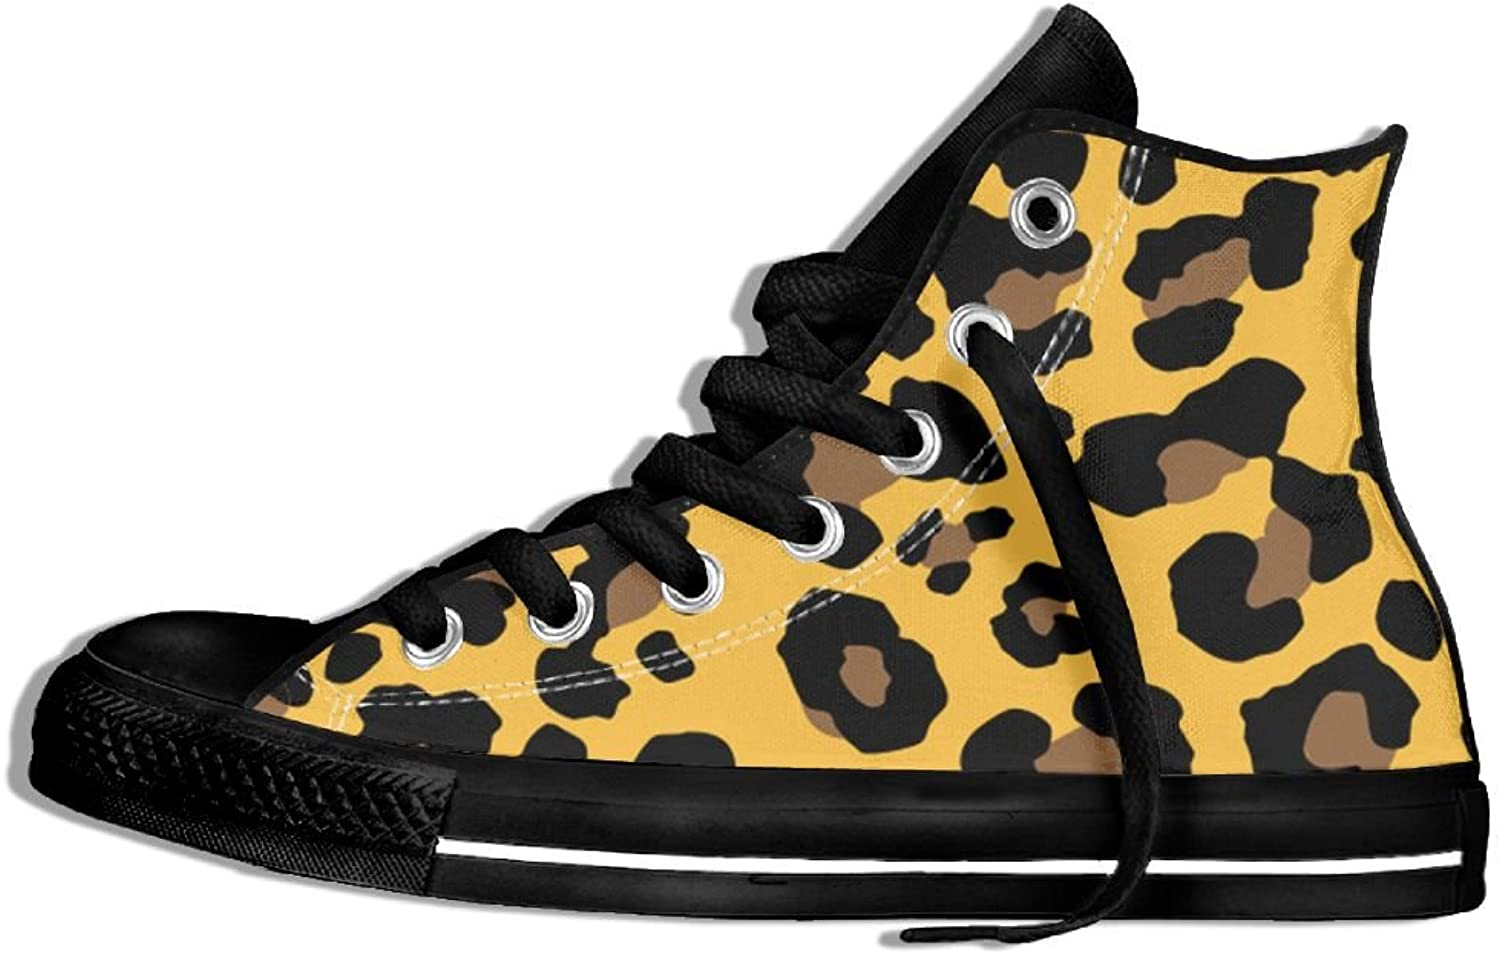 Unisex High Top Sneakers shoes Leopard Skin Pattern Flat Anti-slip Canvas Casual Soft Trainers shoes